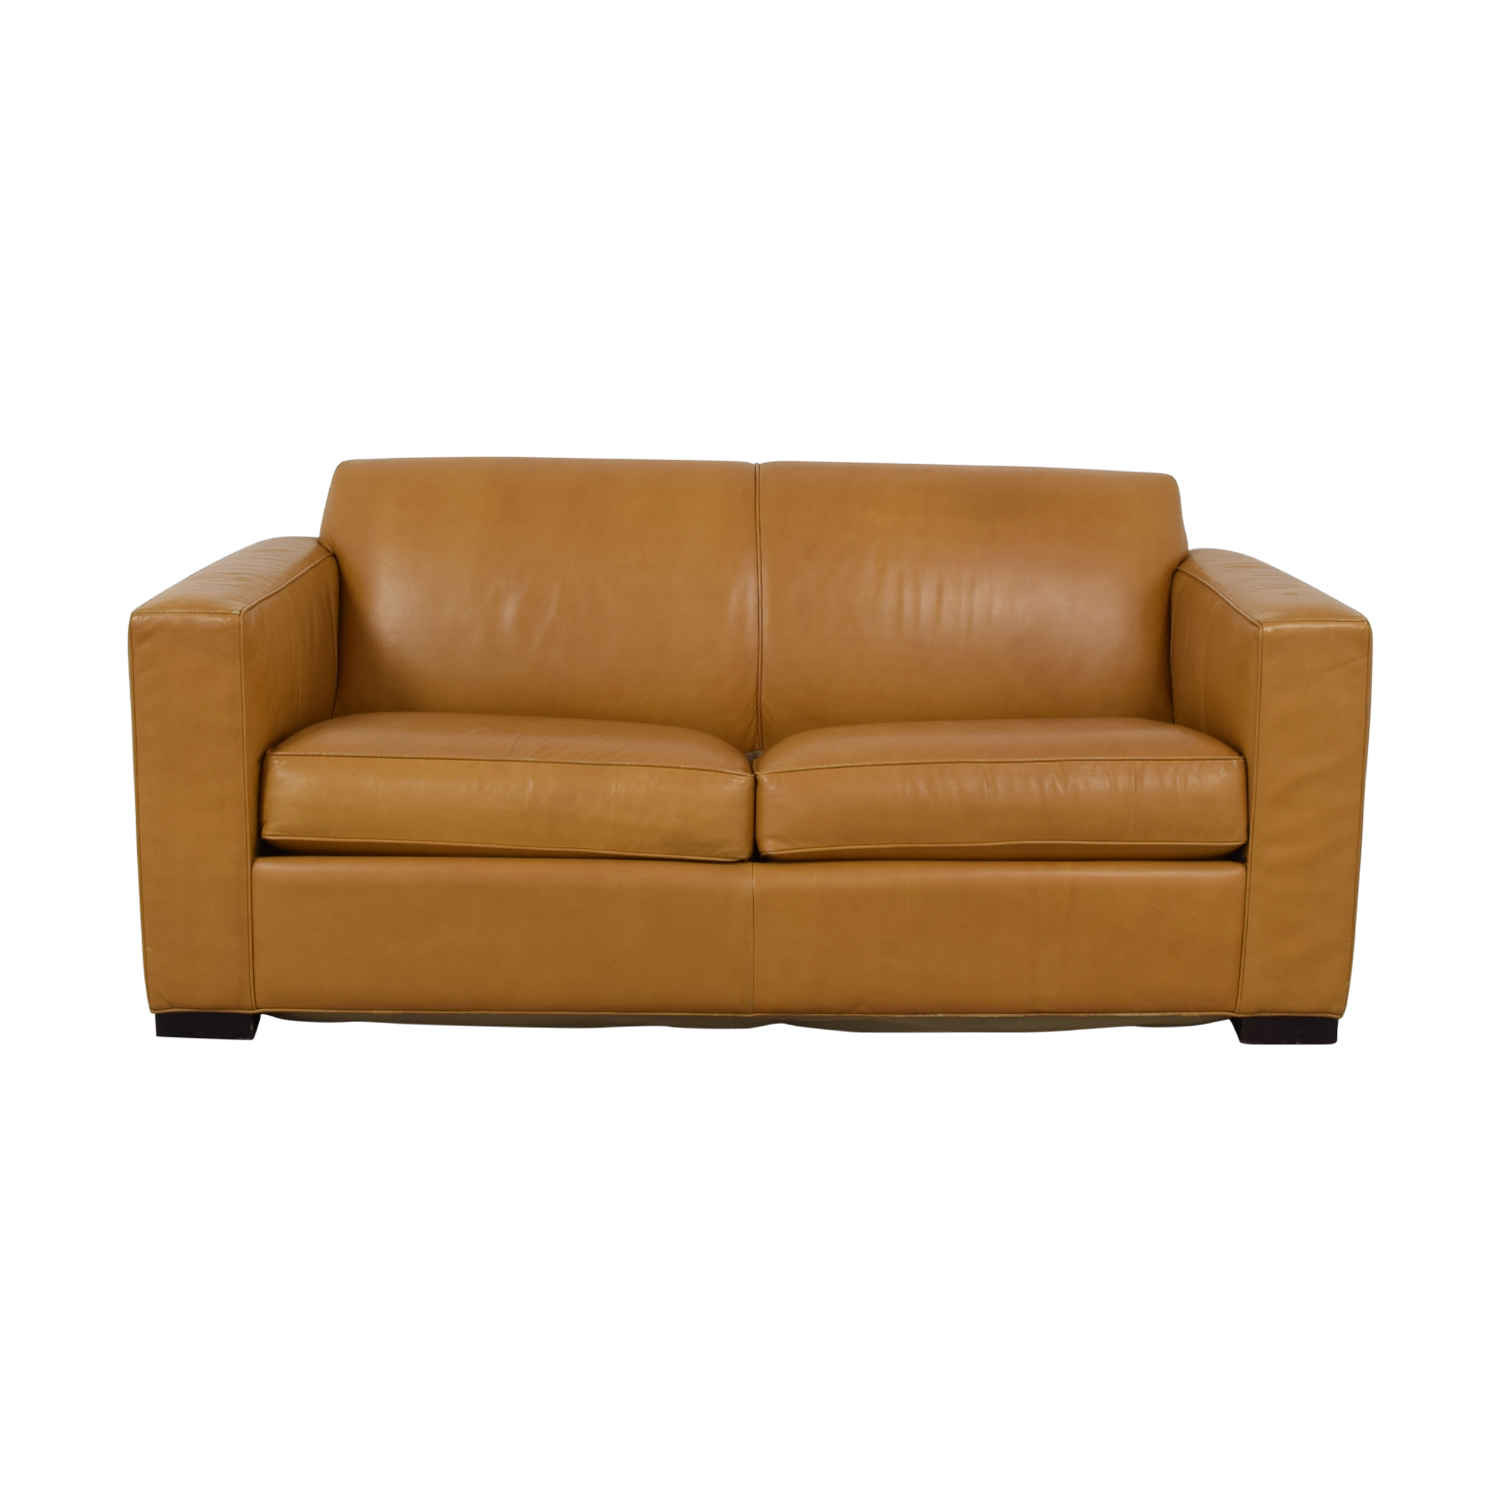 77% OFF - Leggett & Platt Leggett & Platt Full Sleeper Sofa / Sofas